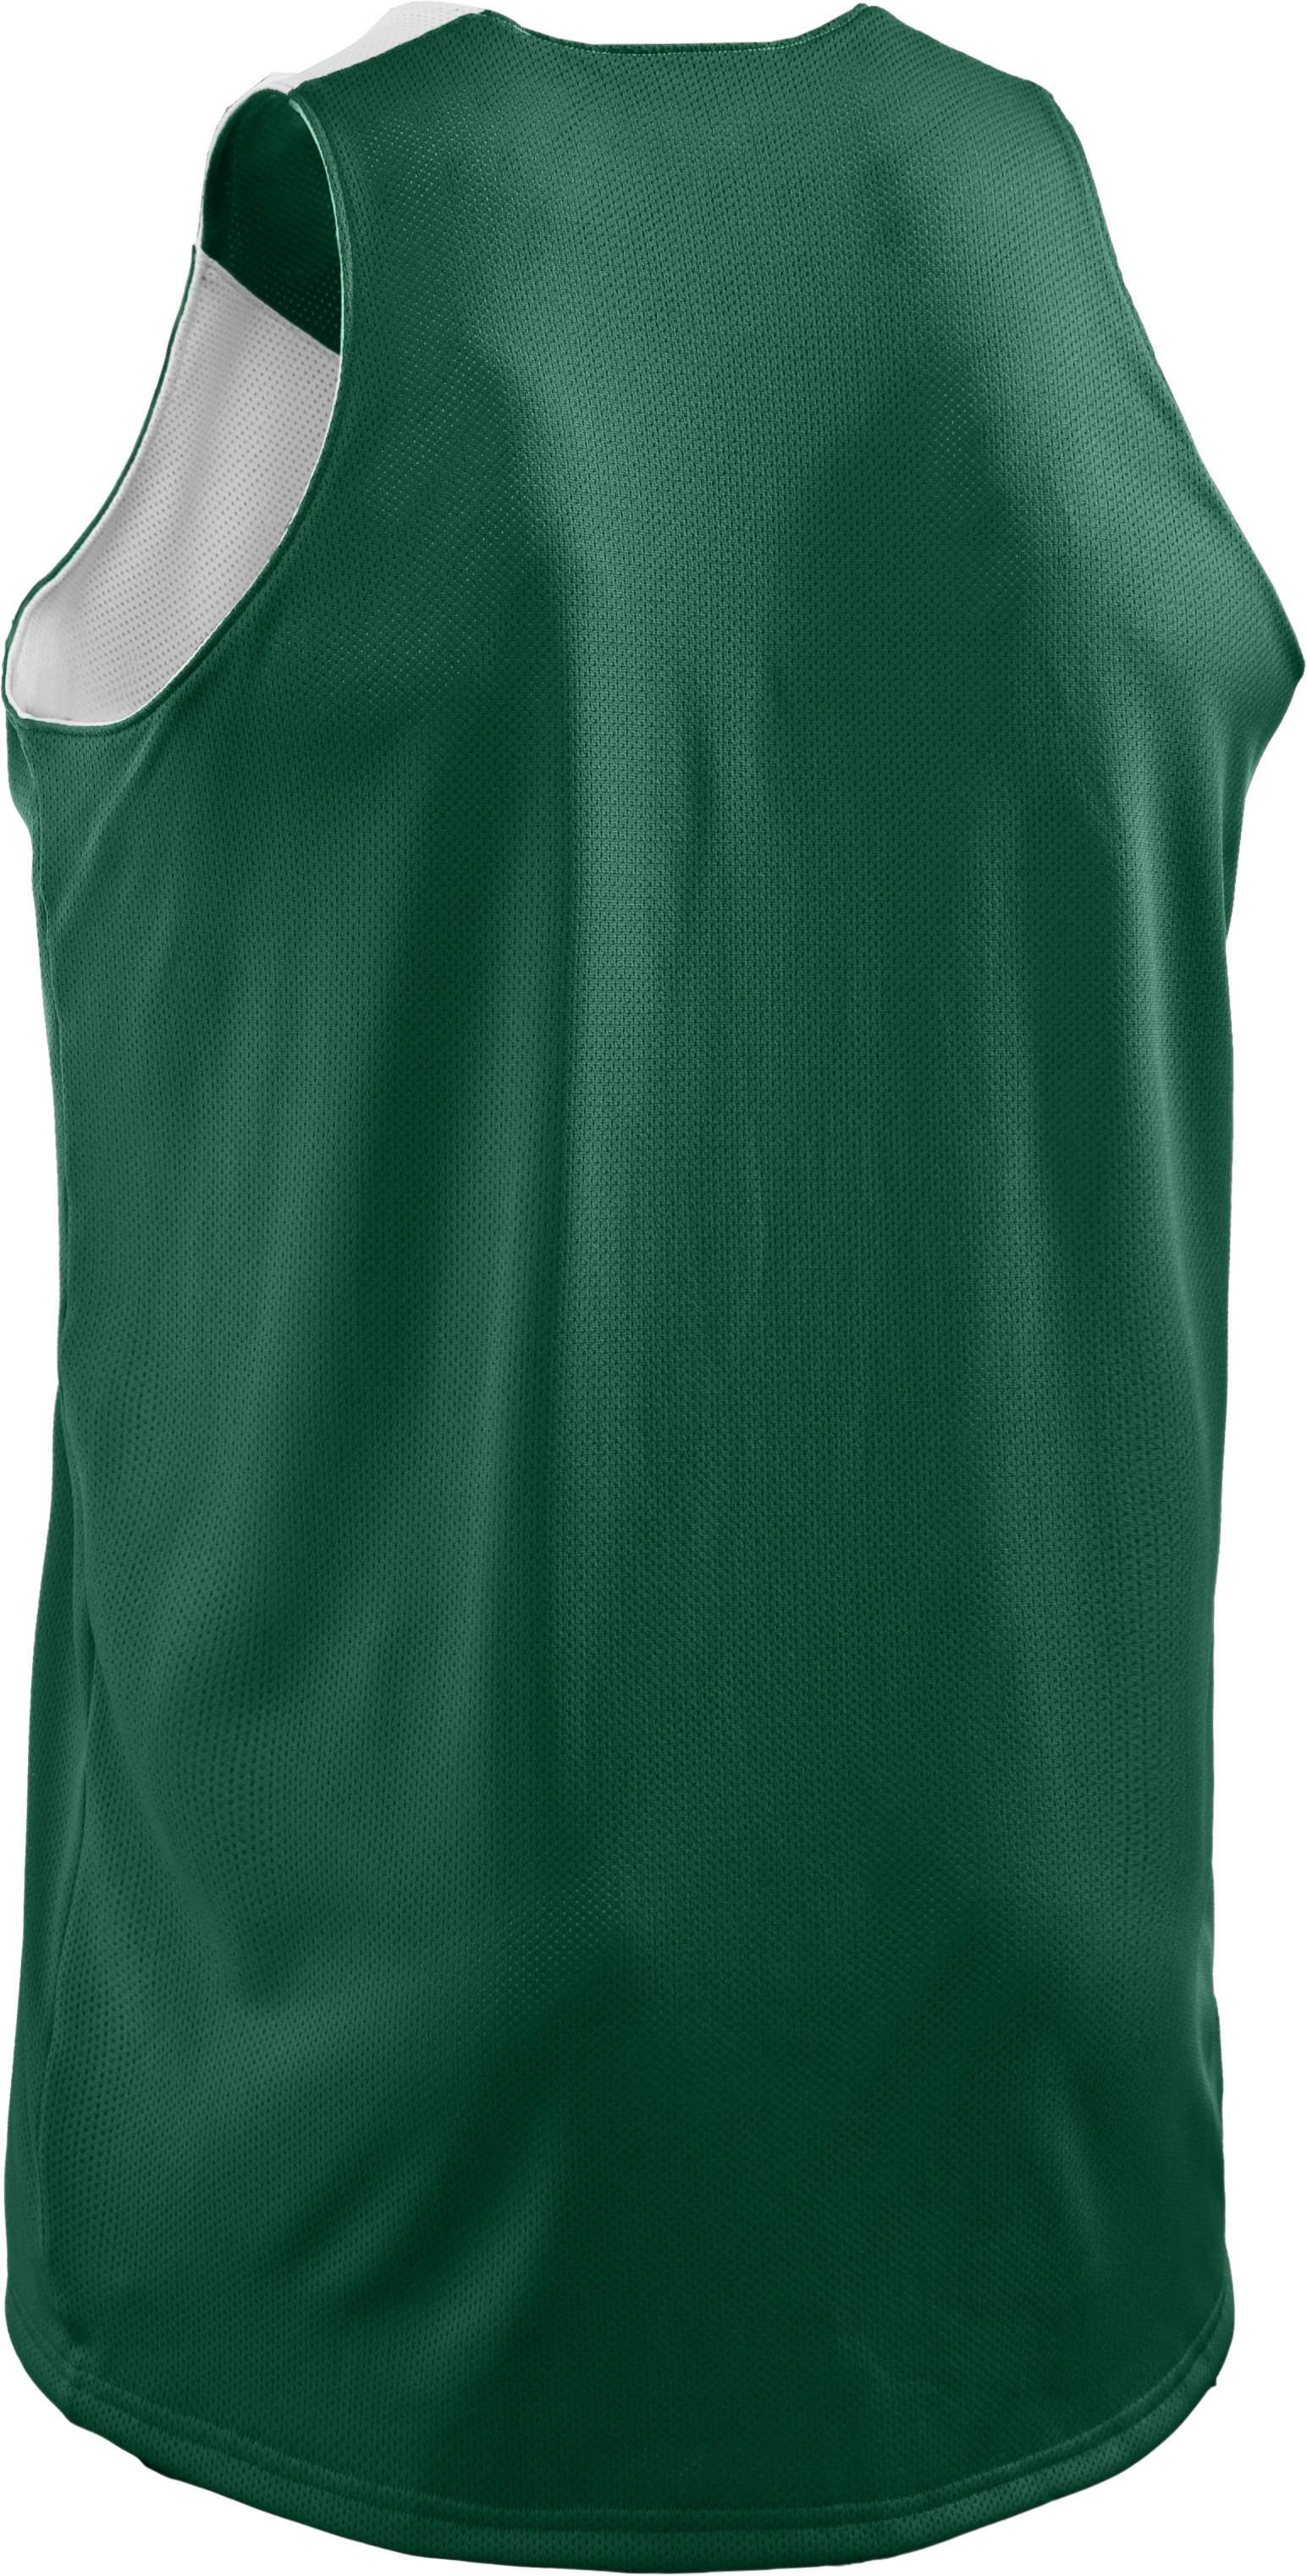 Men's Repeat Reversible Basketball Jersey, Forest Green